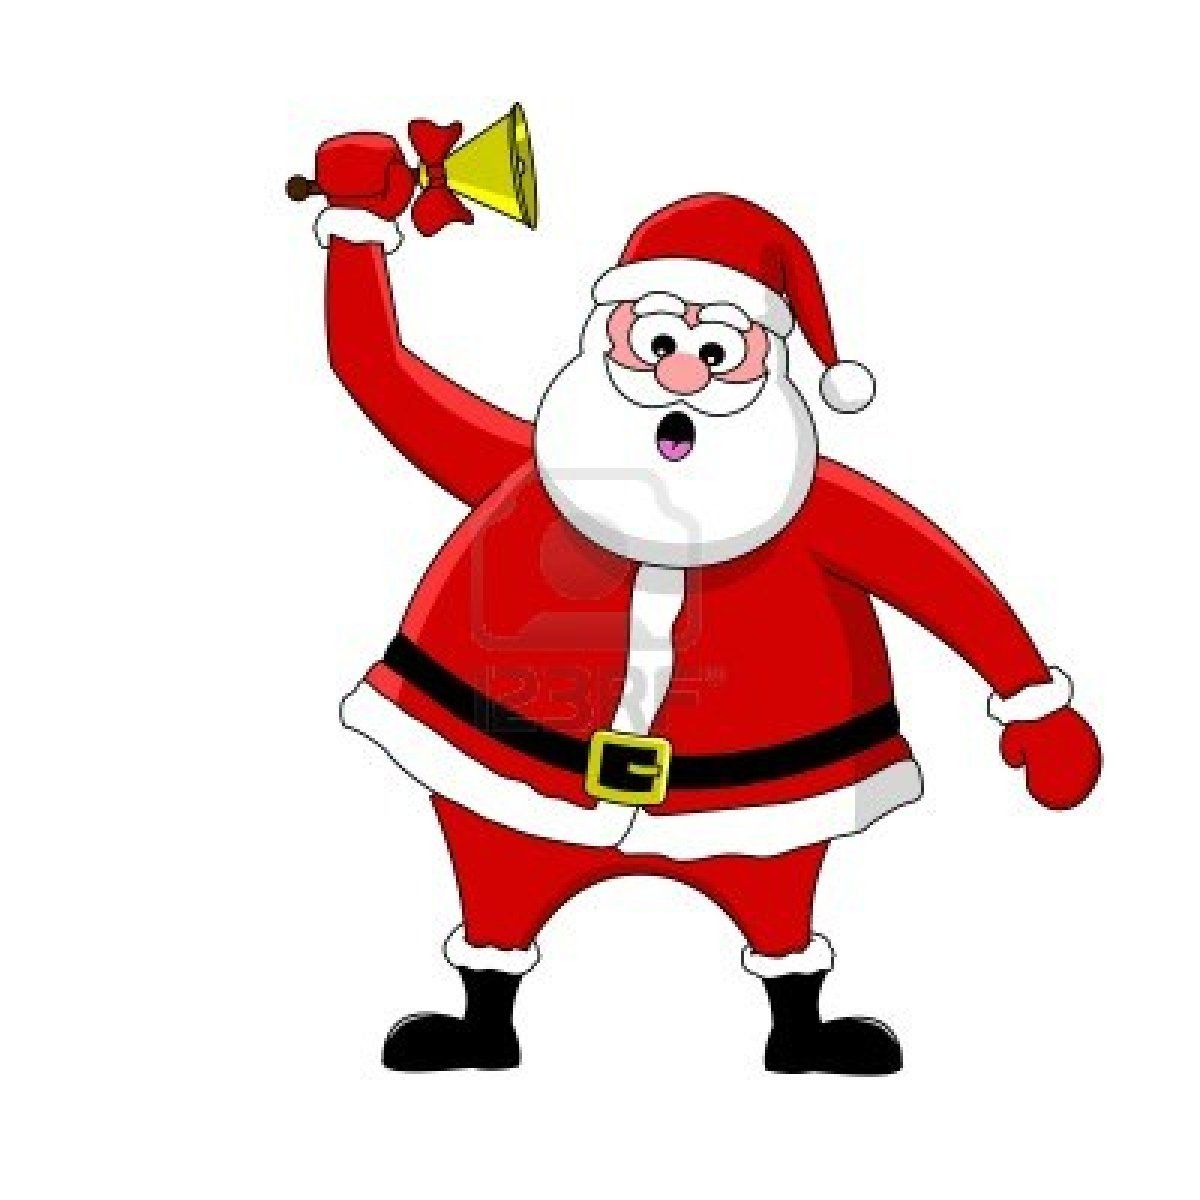 Animated Santa Claus Images.